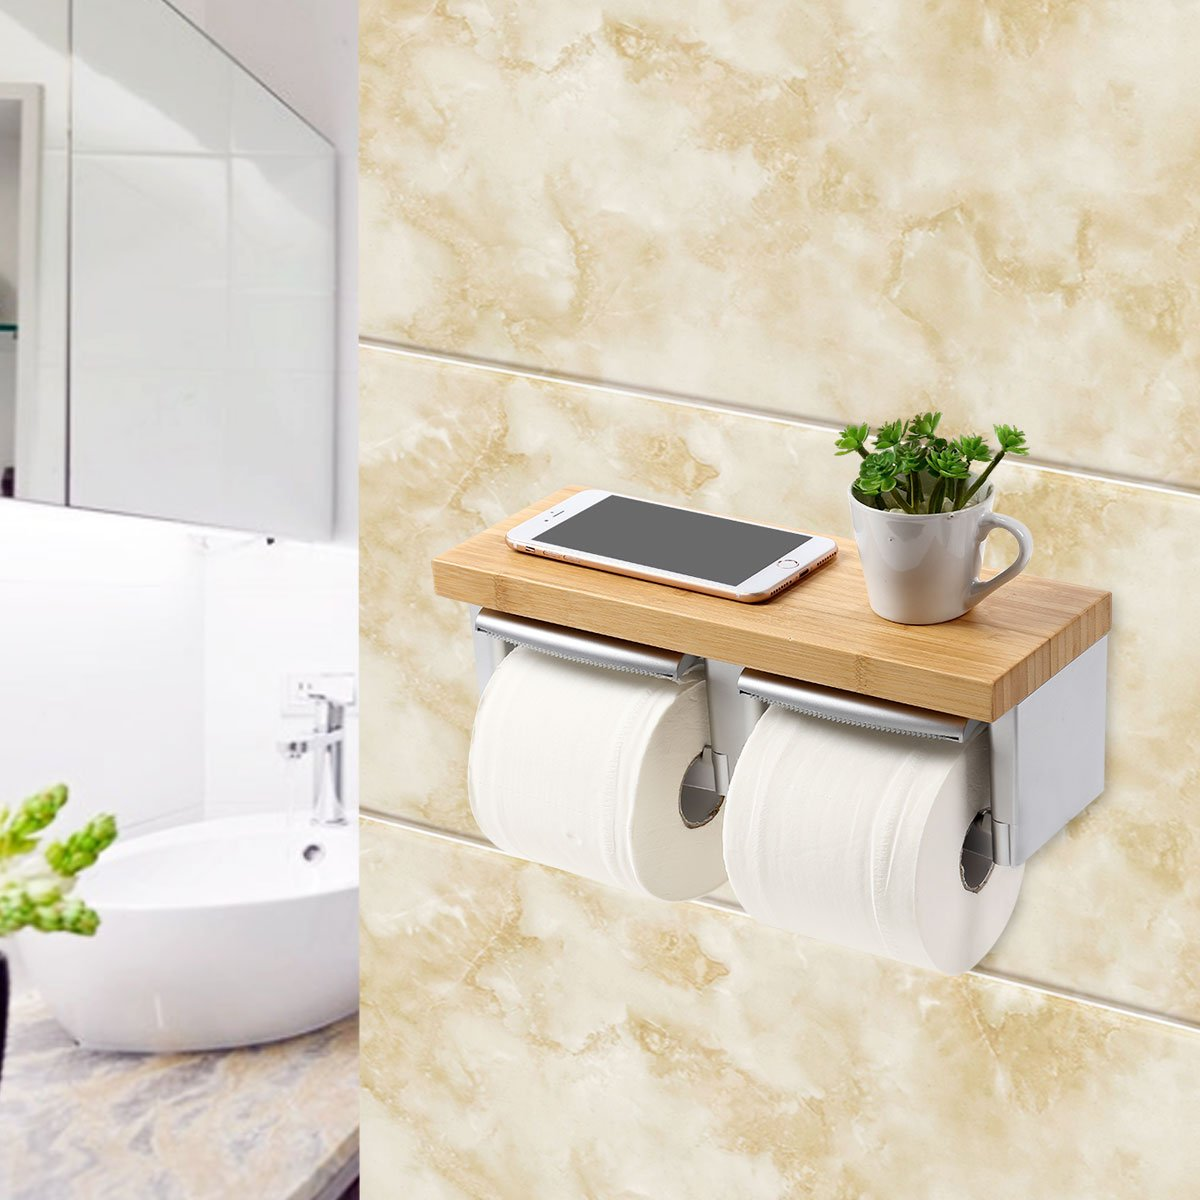 Toilet Paper Holder with Shelf, MEIBEI Double Toilet Roll Holder, Wall Mount Roll Paper Hanger with Mobile Phone Storage